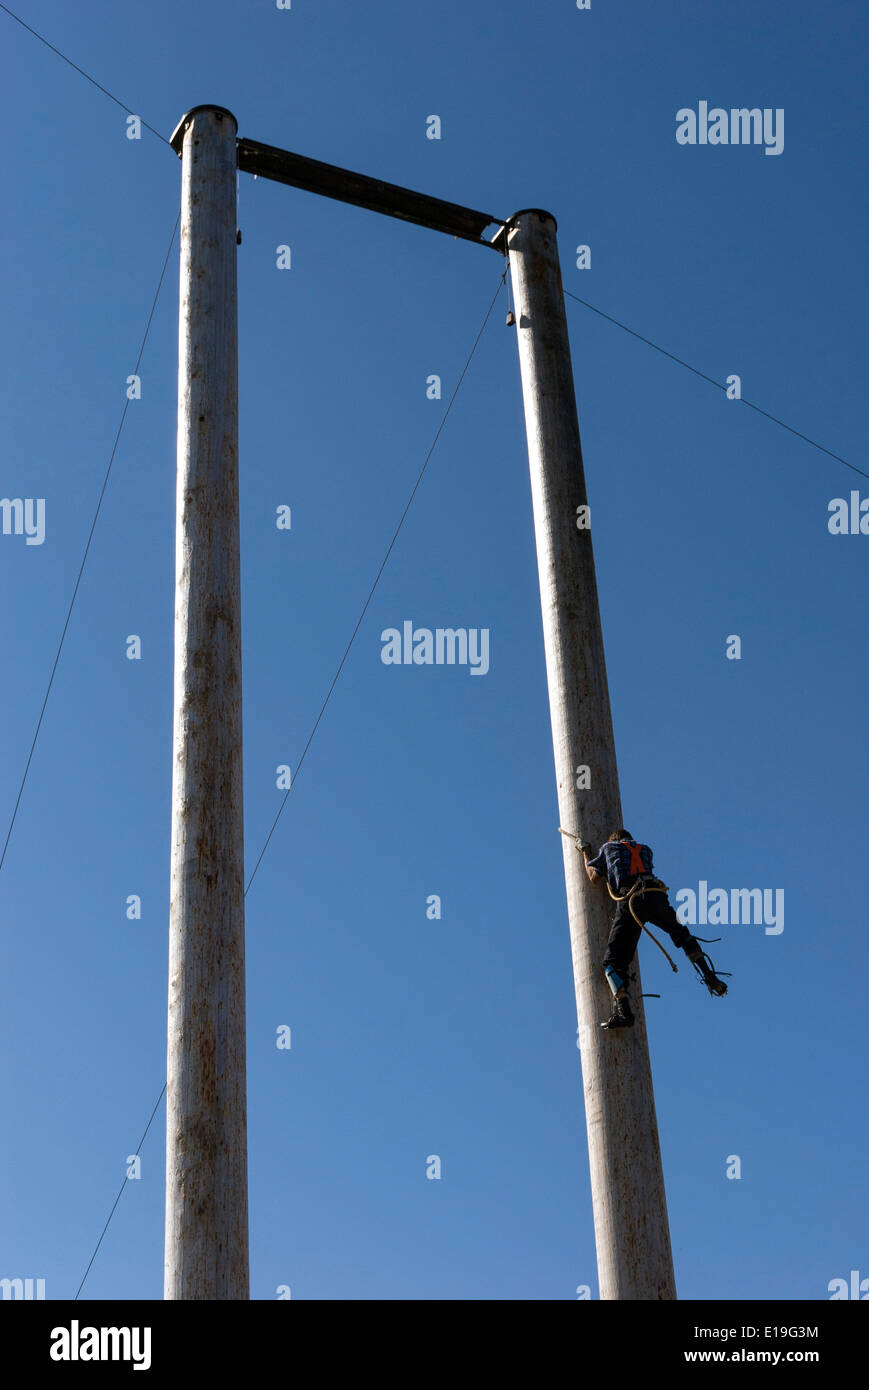 Elk203-1017v Canada, British Columbia, Vancouver, Grouse Mountain, lumberjack climbing demonstration - Stock Image